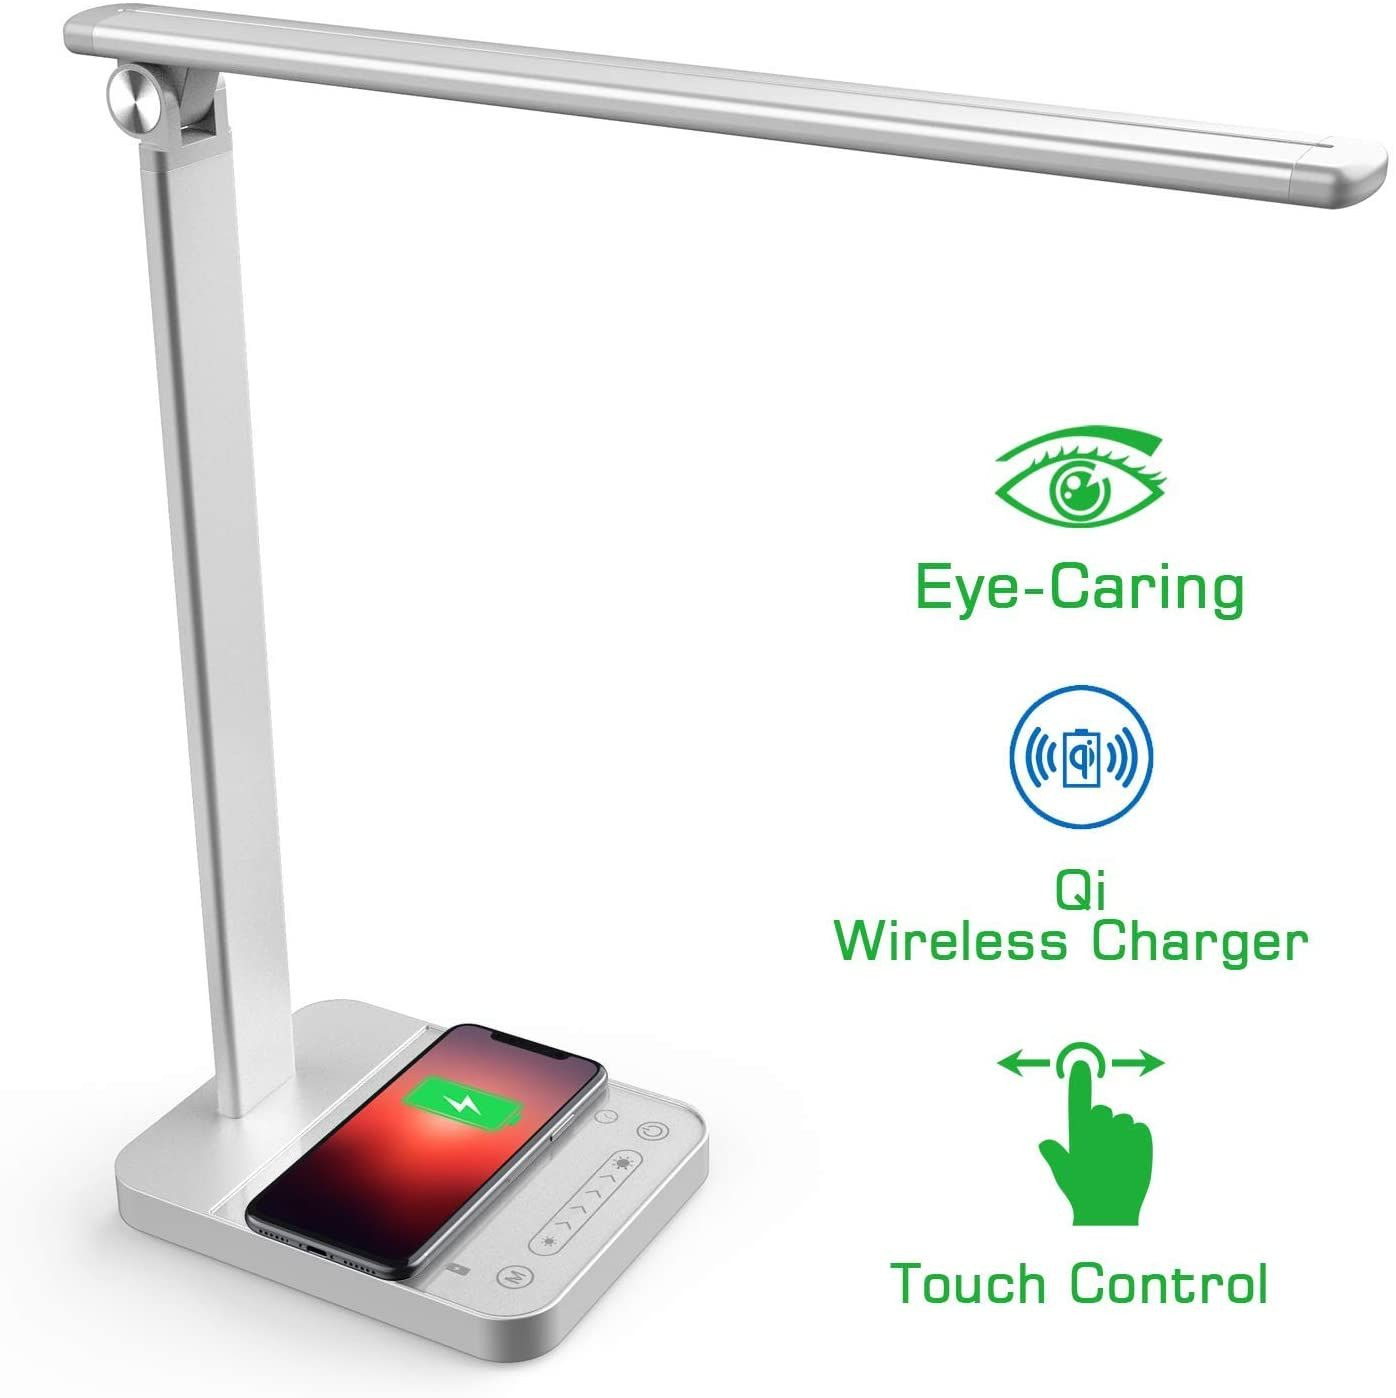 Napatek Led Desk Lamp With Wireless Charger Touch Control In 2020 Study Lamps Desk Lamp Led Desk Lamp